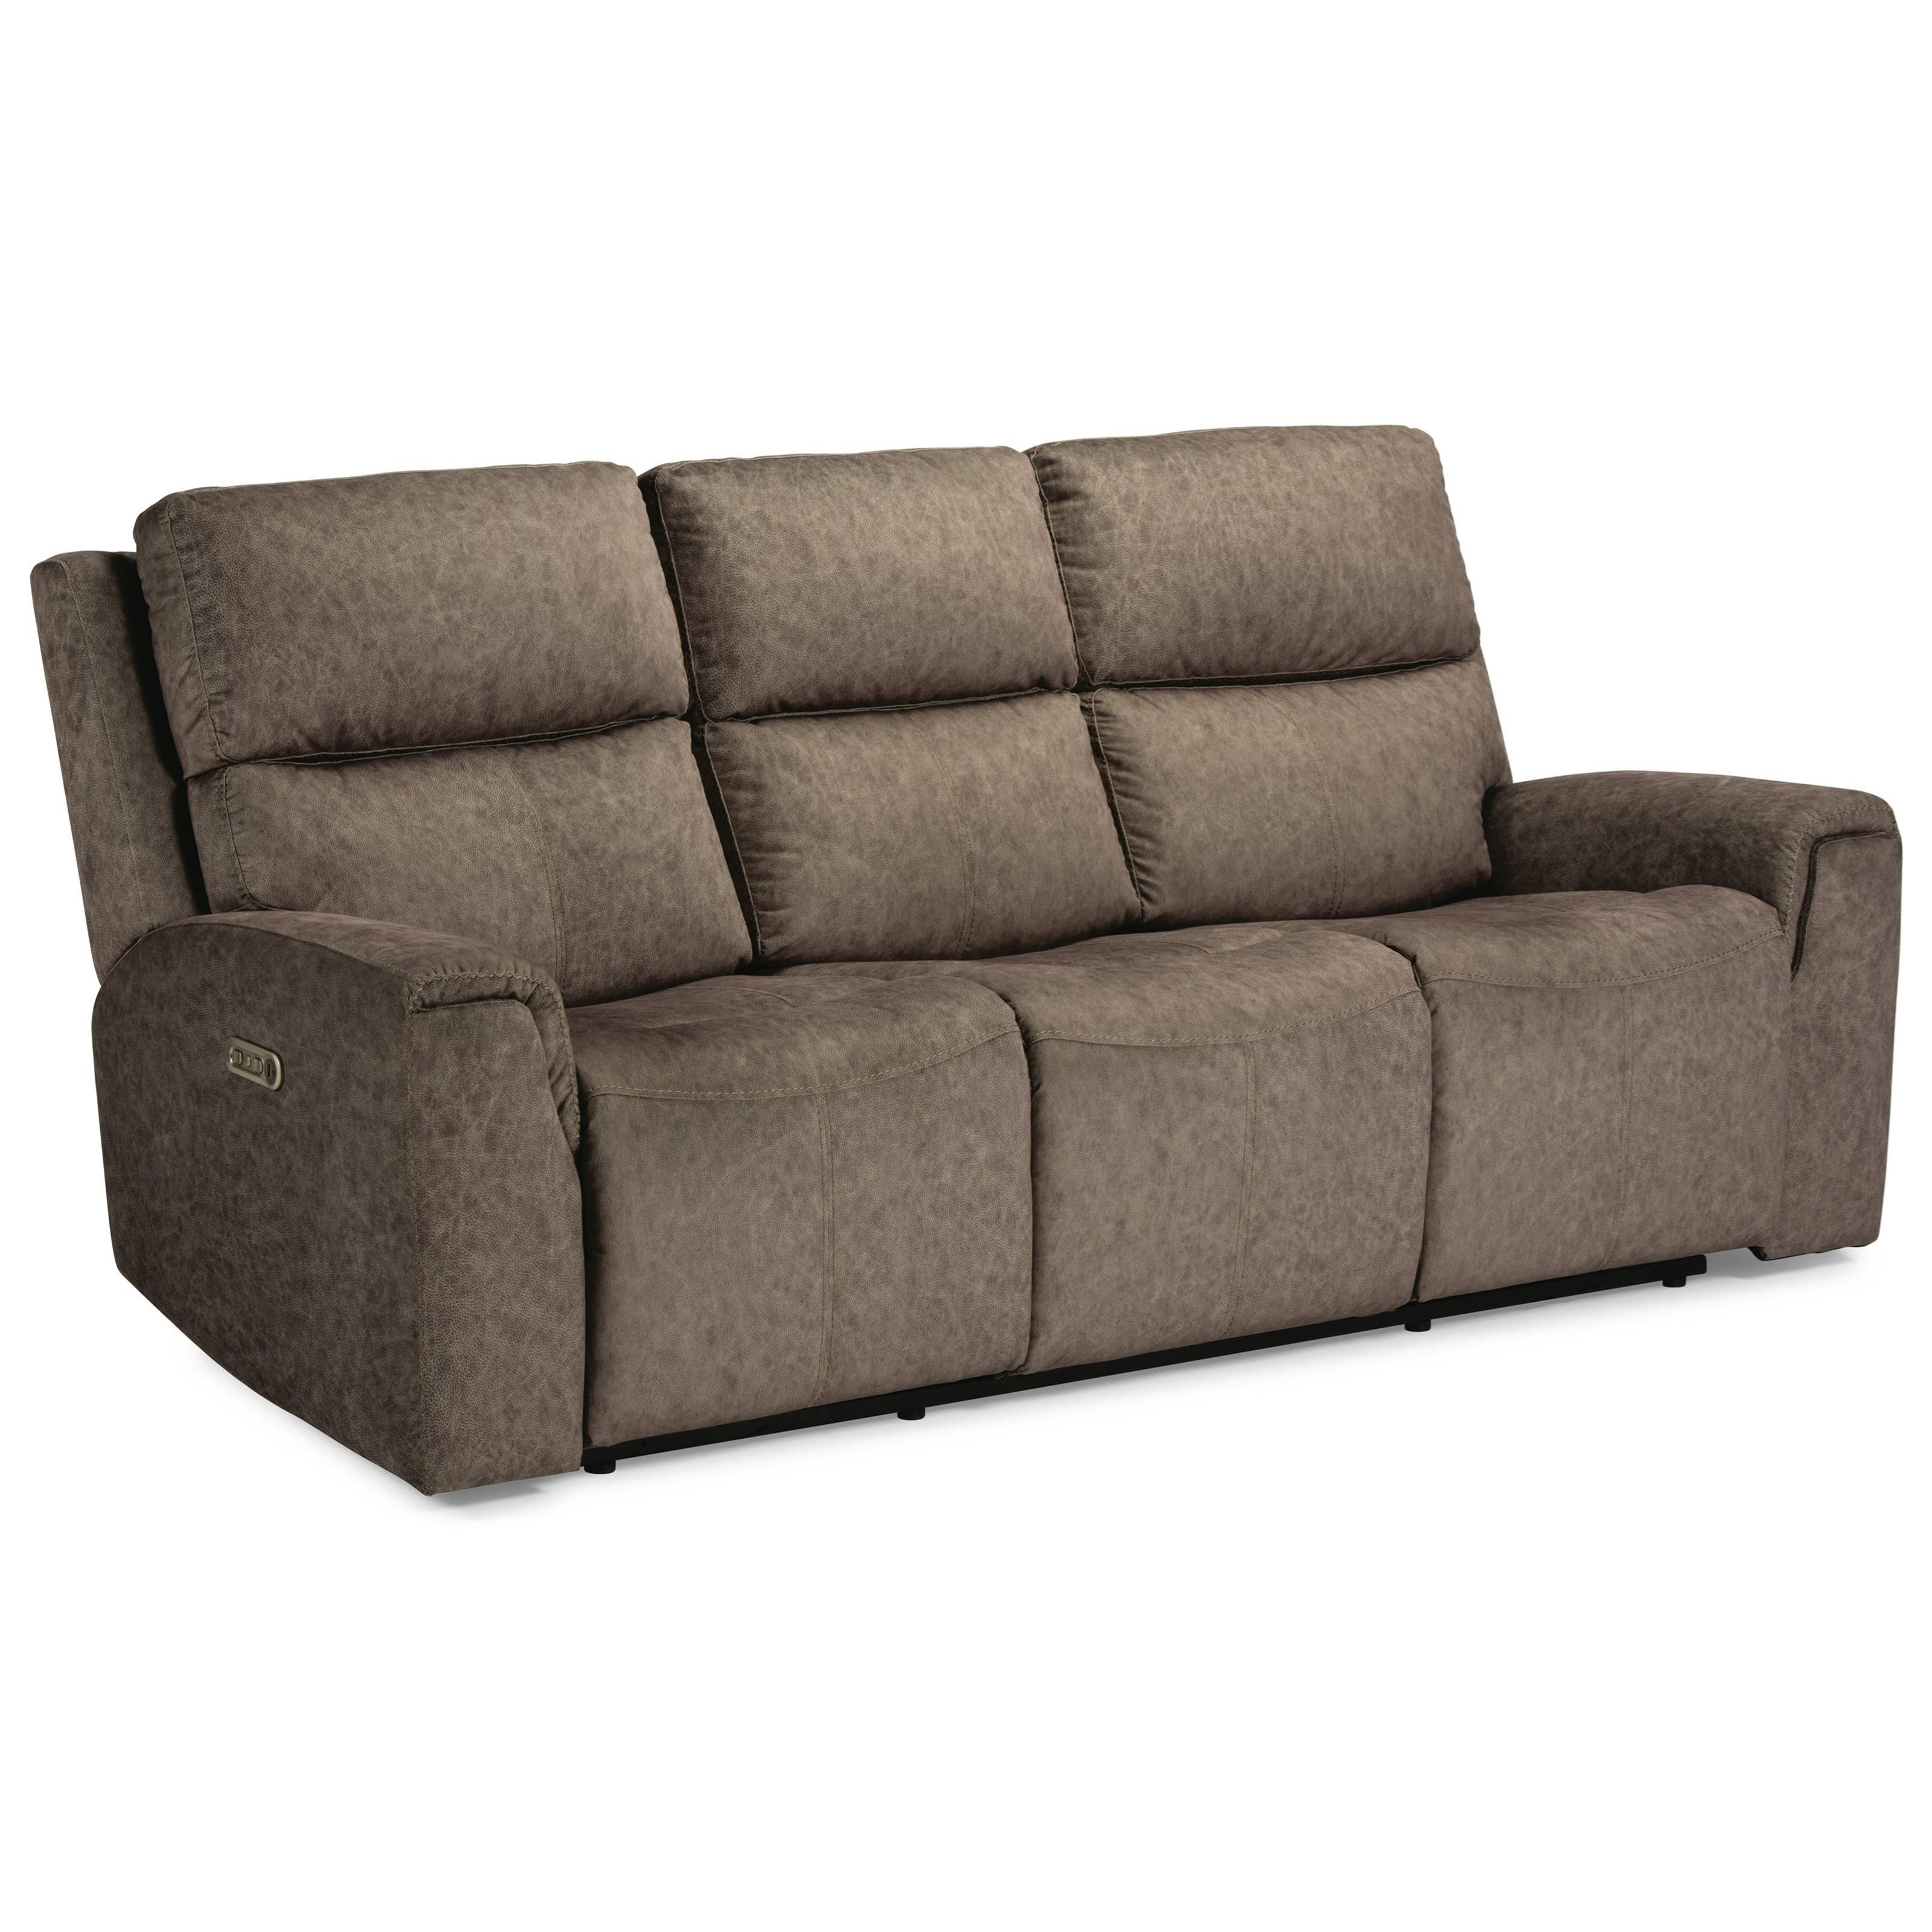 Latitudes - Jarvis Power Reclining Sofa by Flexsteel at Walker's Furniture